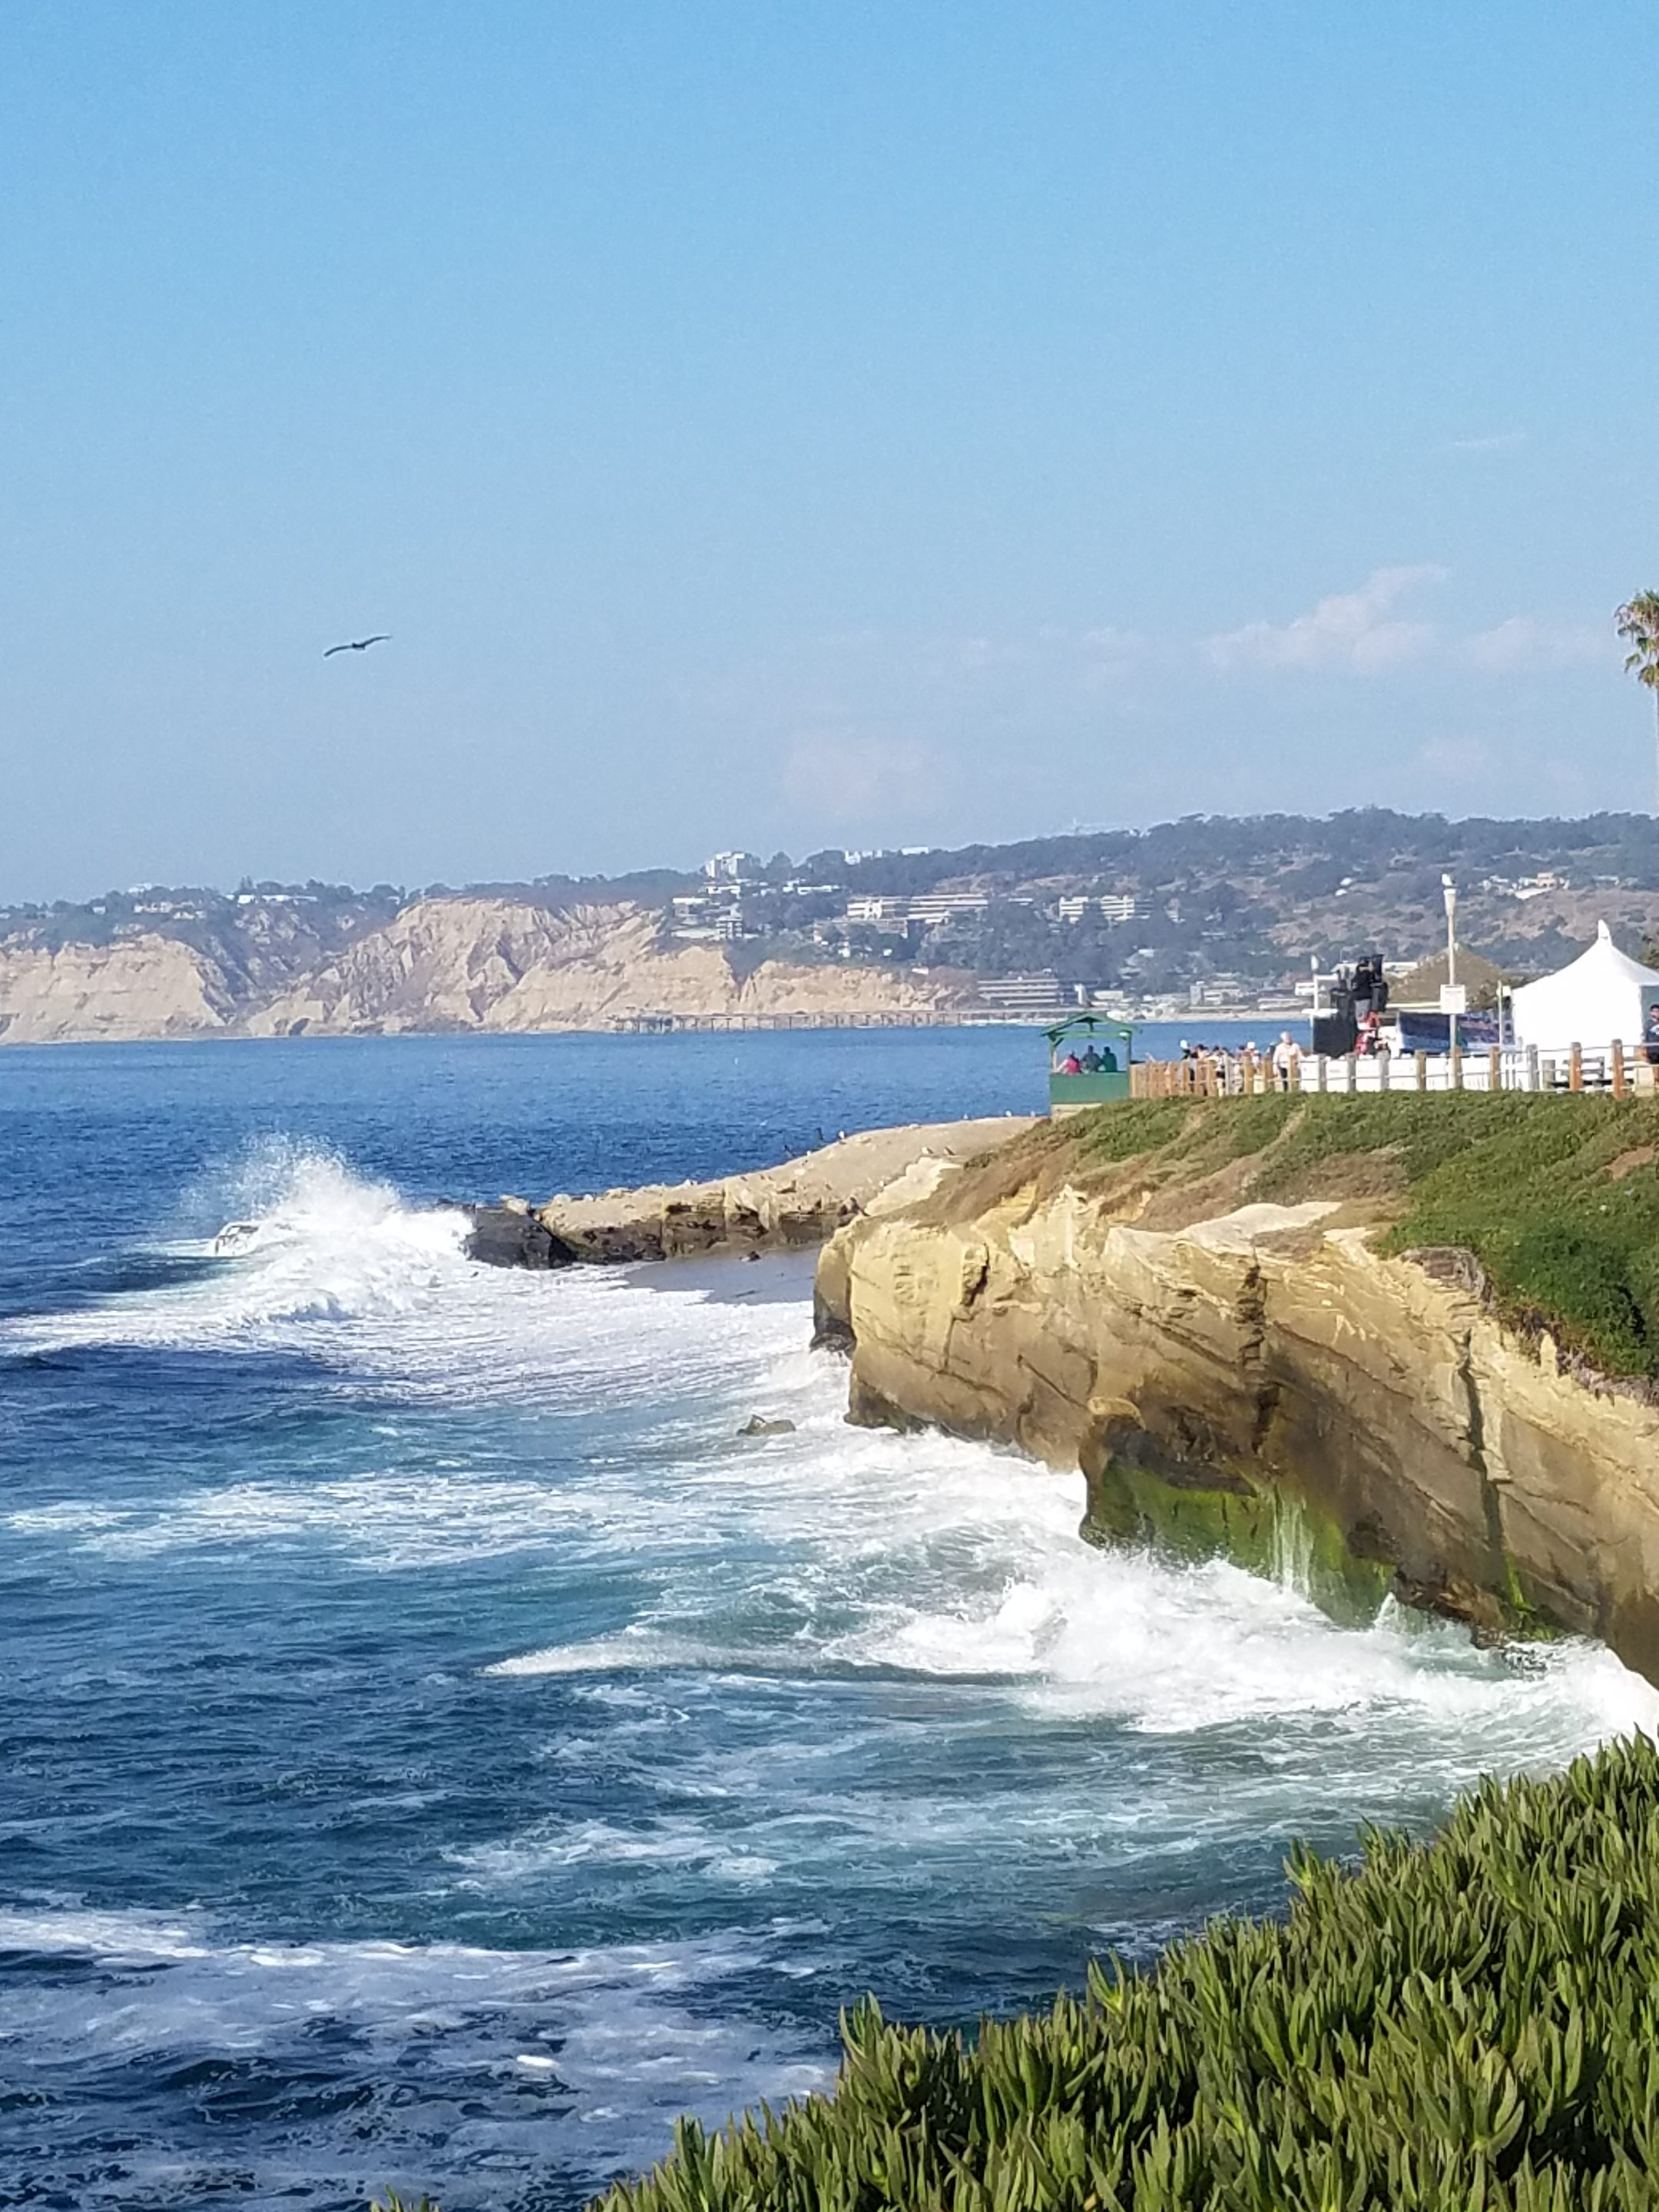 10 pictures that are going to make you want to take a family vacation to La Jolla right now!